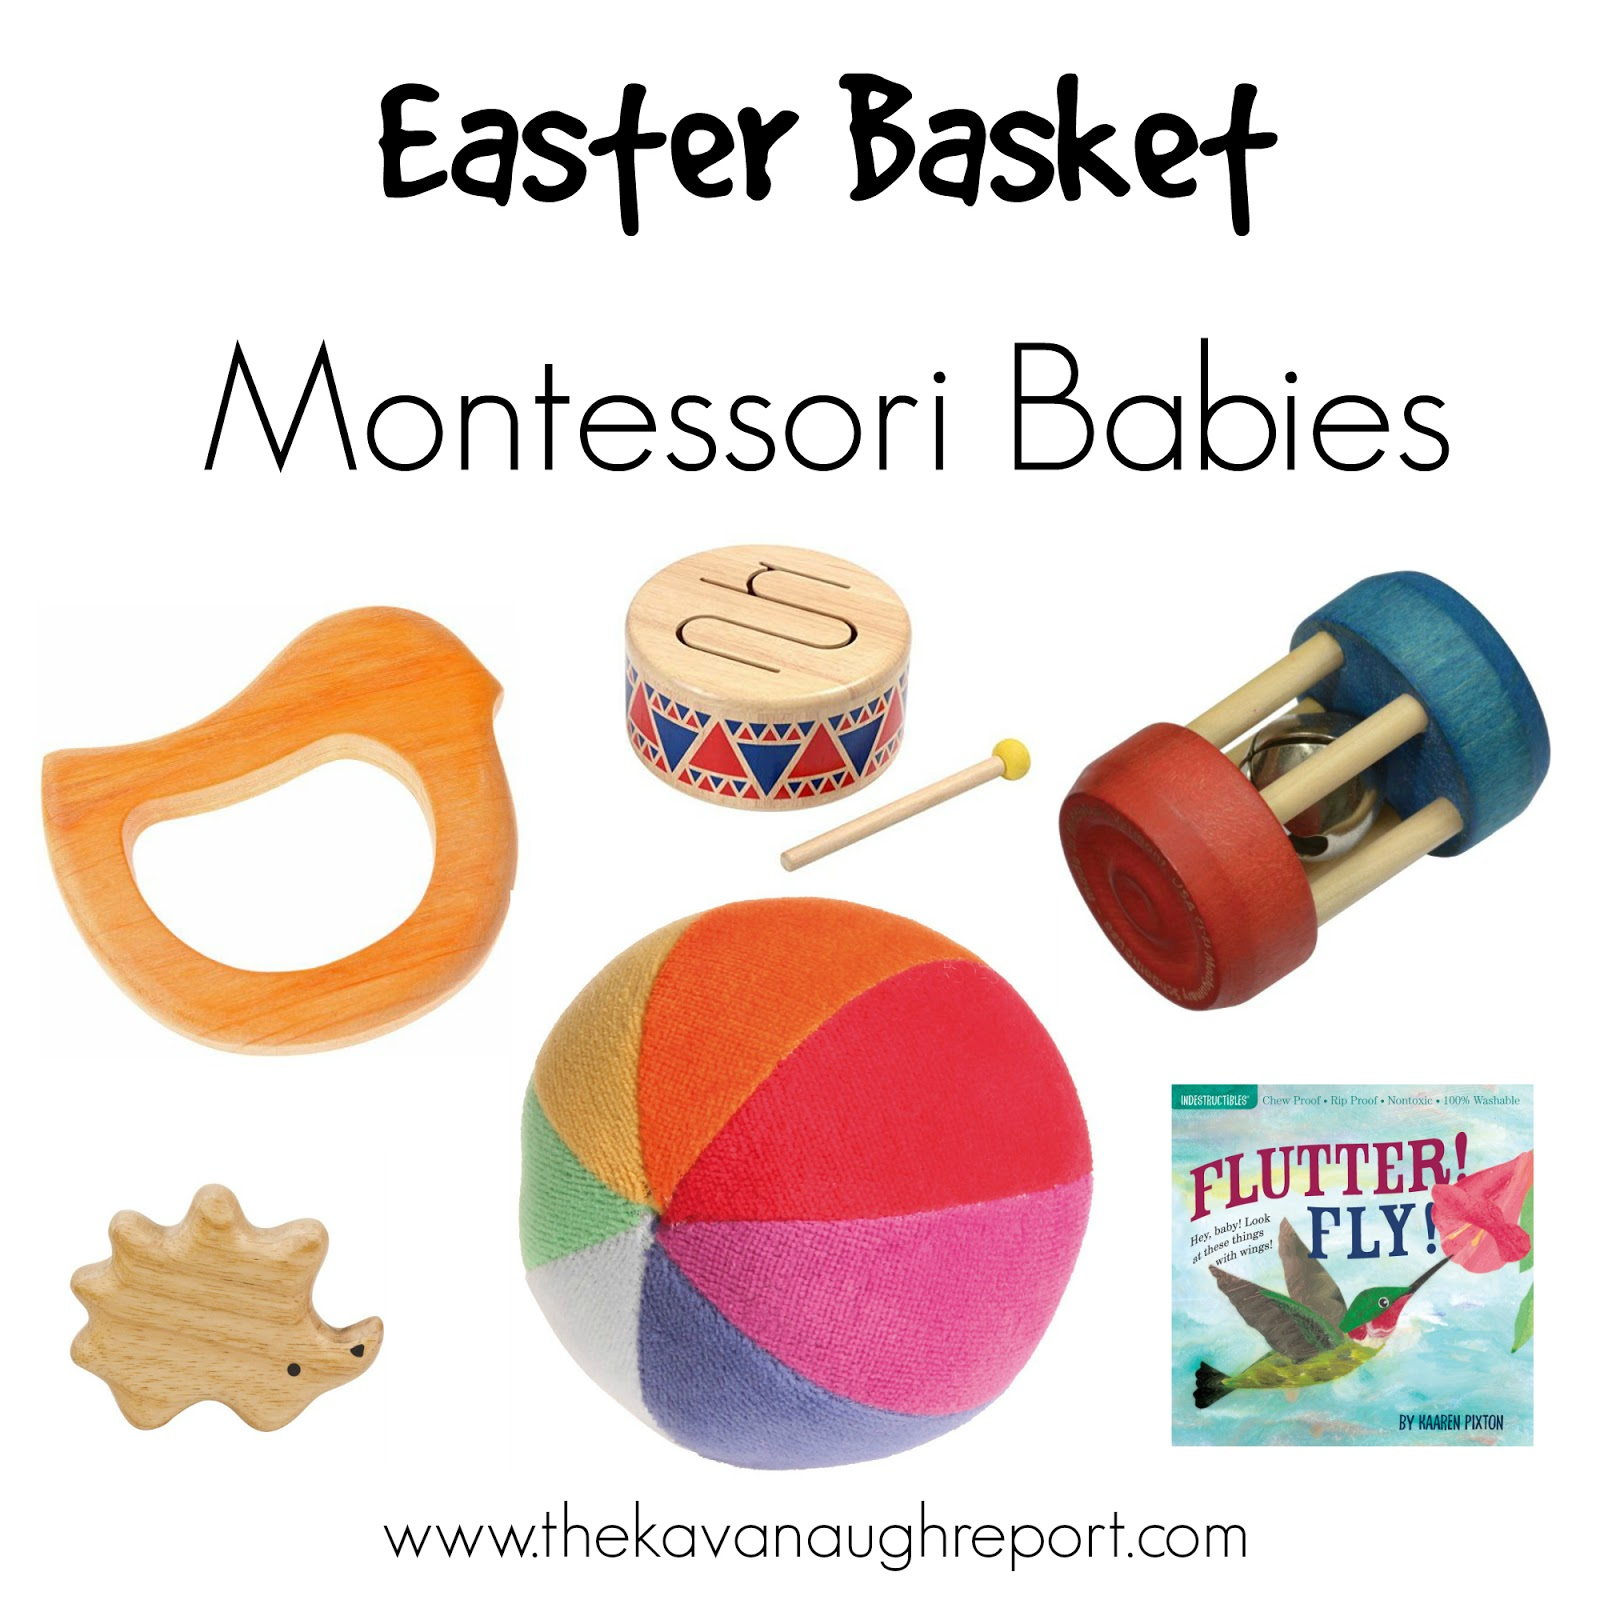 Easter baskets for montessori babies toddlers and preschoolers montessori friendly easter basket ideas for babies toddlers and preschoolers negle Images